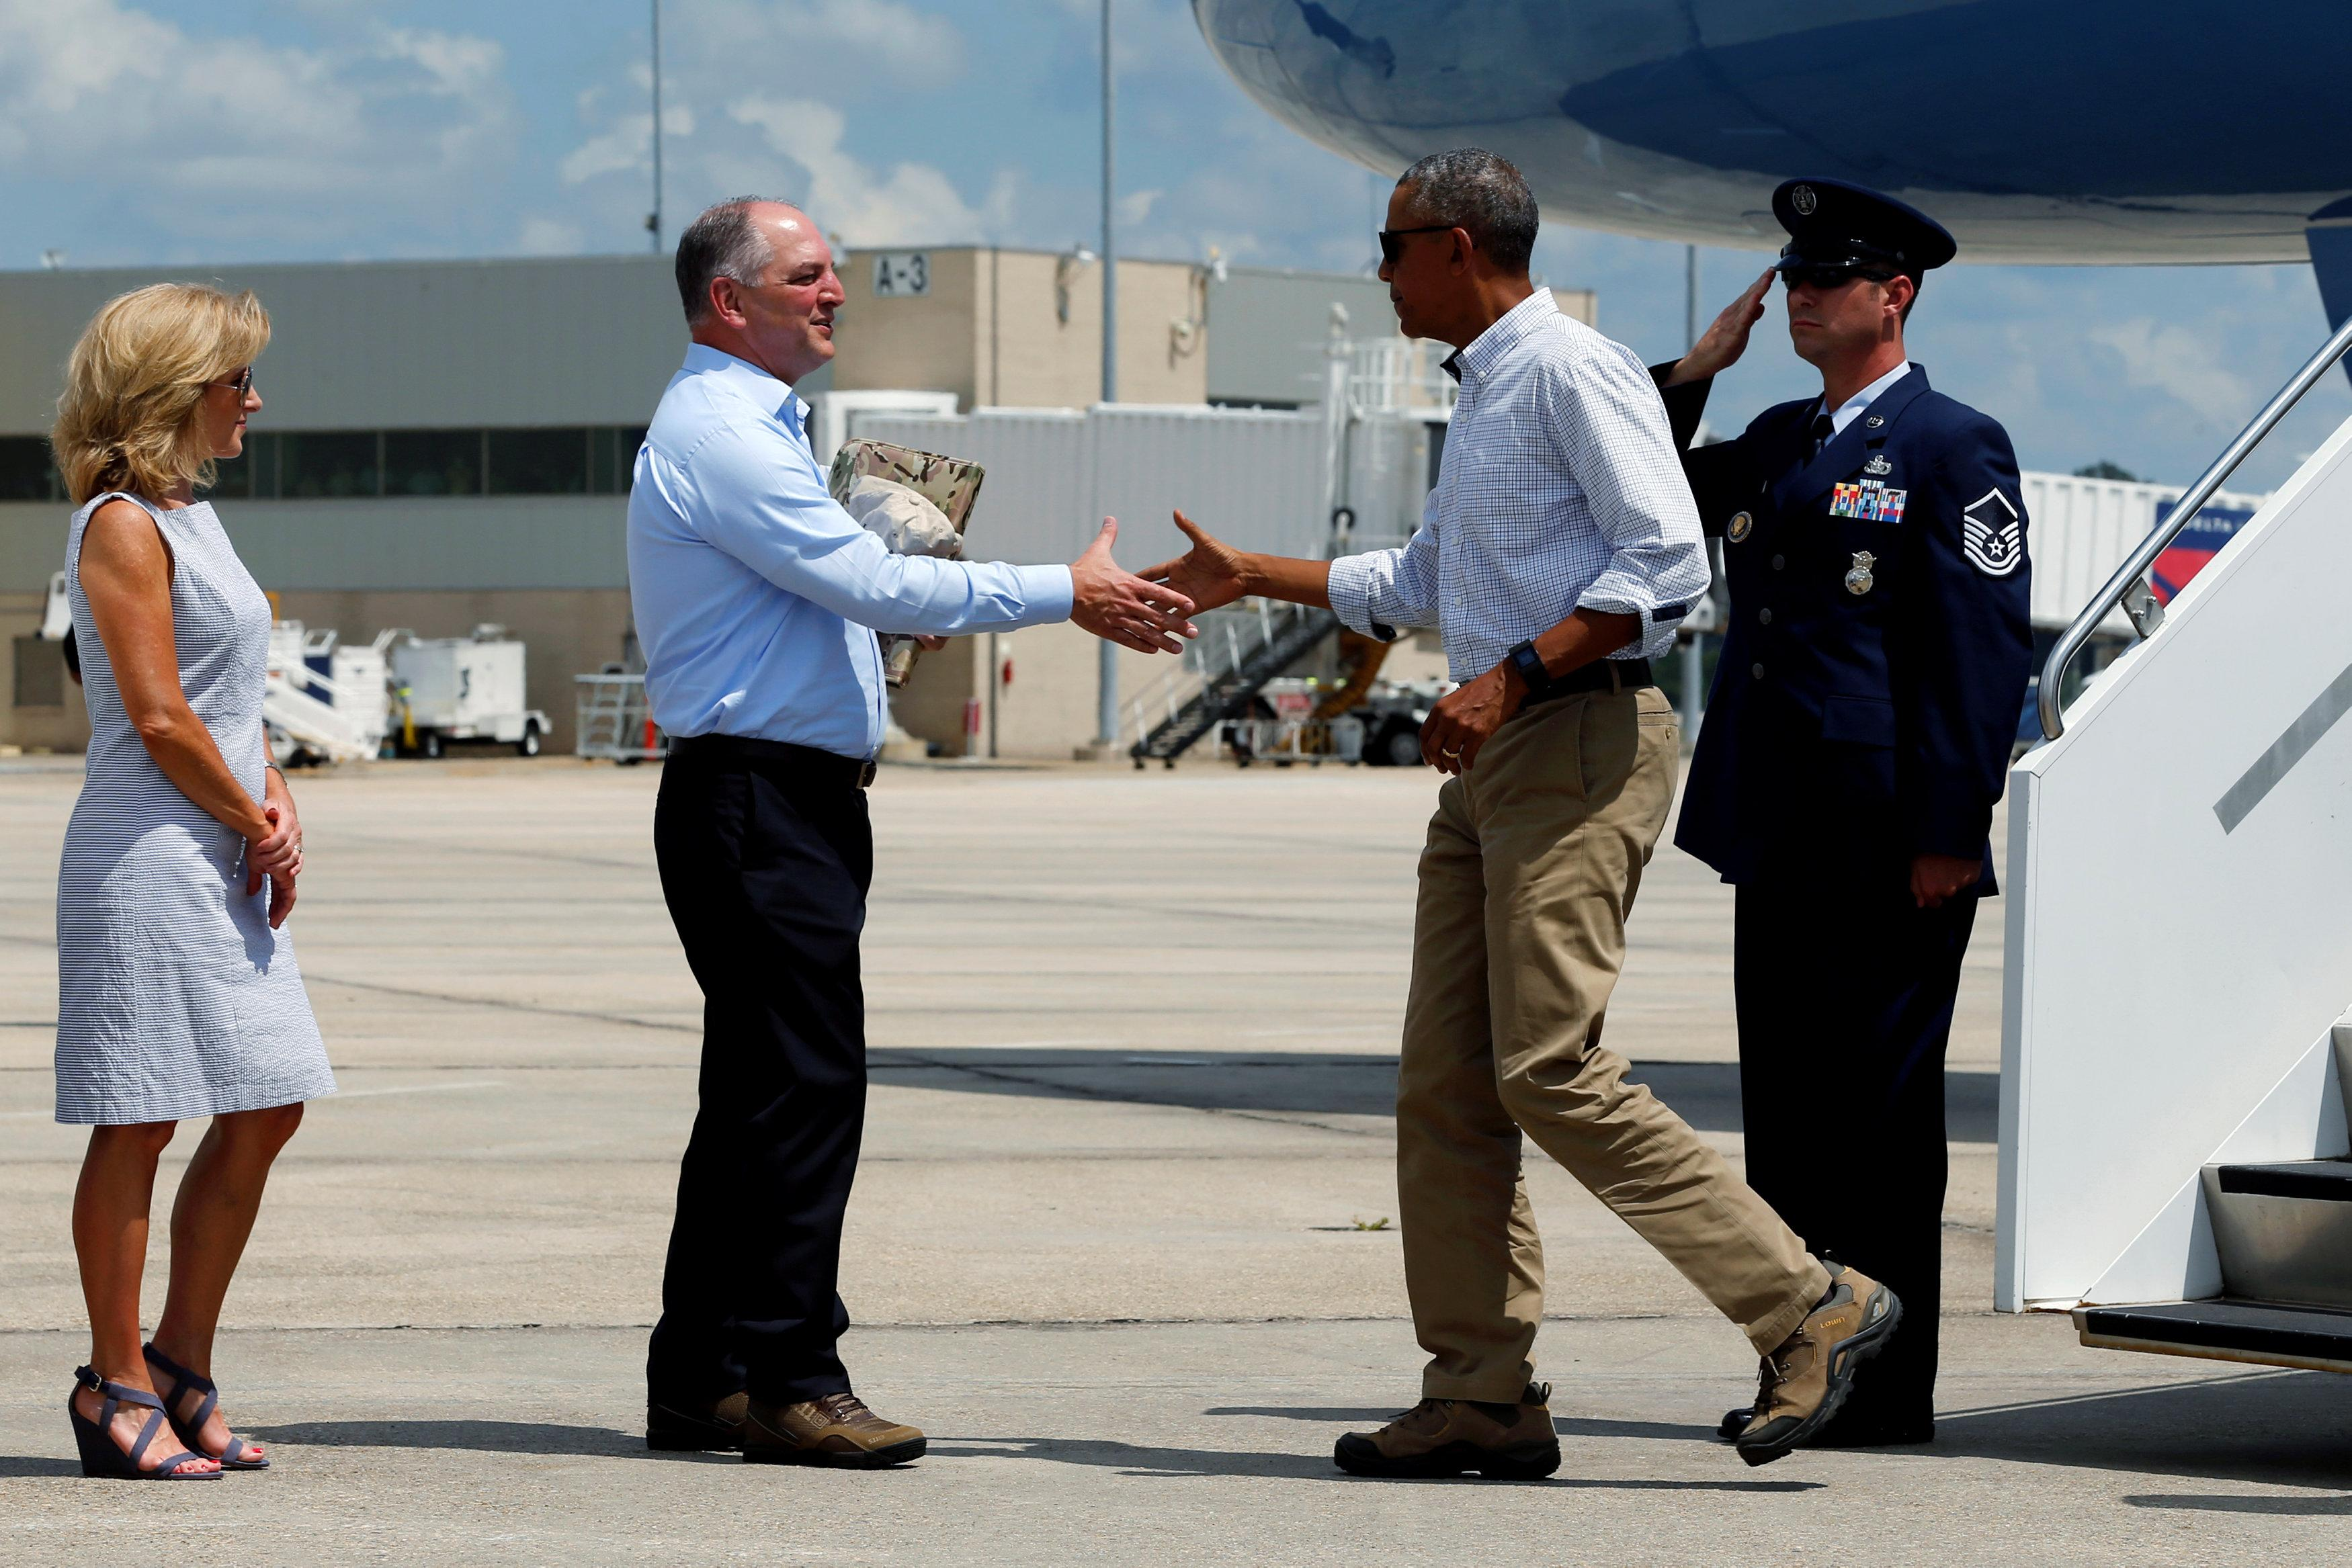 Louisiana Governor John Bel Edwards (2nd L) and his wife Donna (L) greet U.S. President Barack Obama as he arrives aboard Air Force One at Baton Rouge Metropolitan Airport in Baton Rouge, Louisiana, U.S., August 23, 2016. REUTERS/Jonathan Ernst